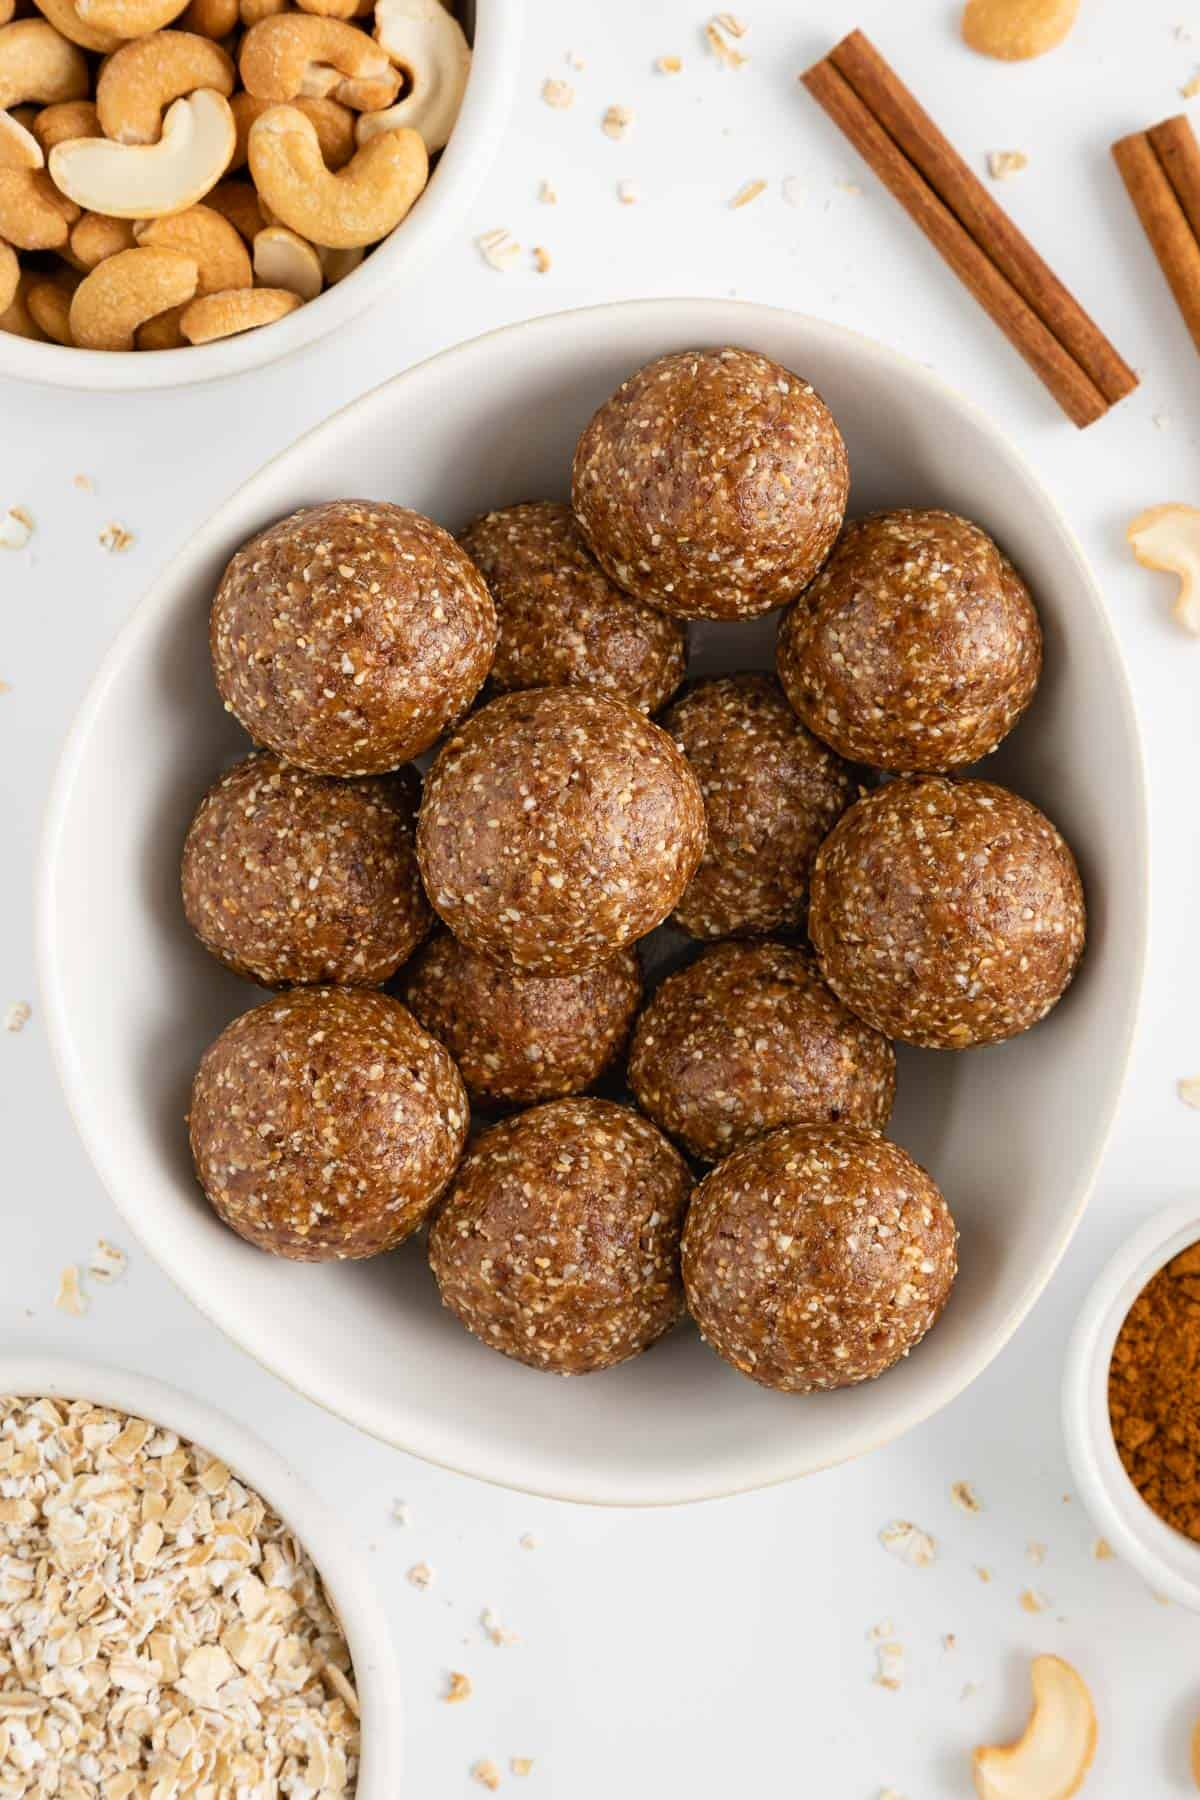 cinnamon roll energy balls inside a white bowl surrounded by oats, cashews, and cinnamon